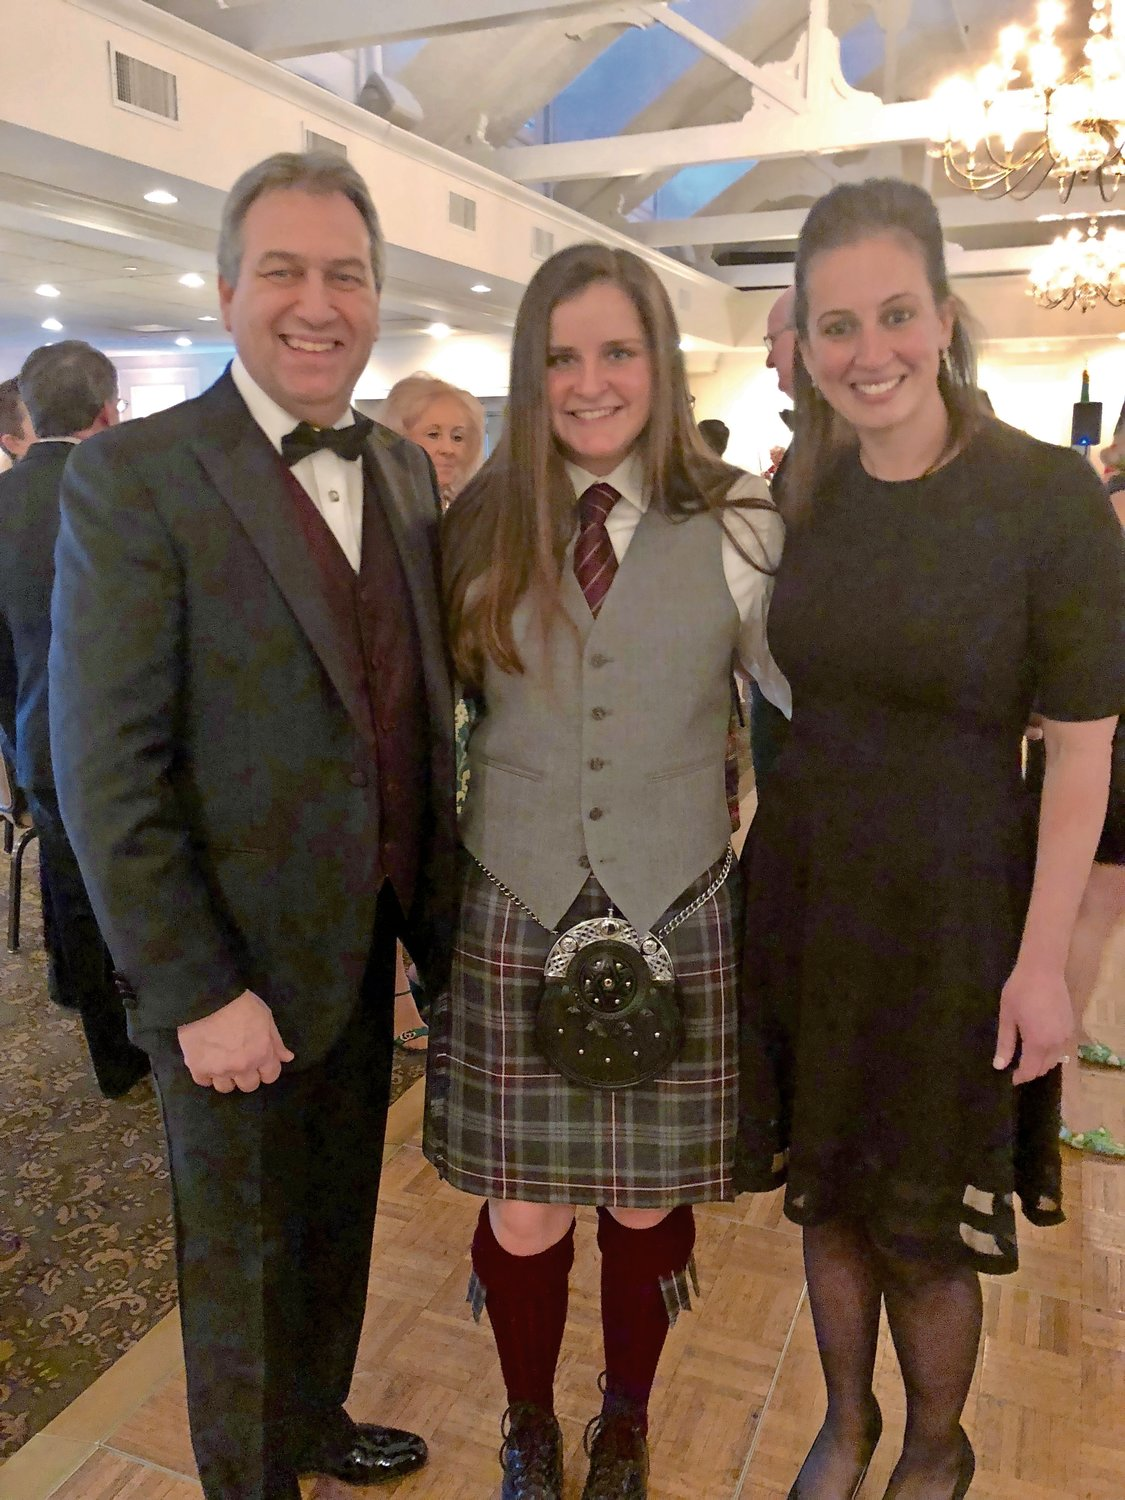 Erin McGrath, center, was invited by Molloy College President Drew Bogner and Vice President of Student Affairs Janine Payton to create a pipe band on campus.